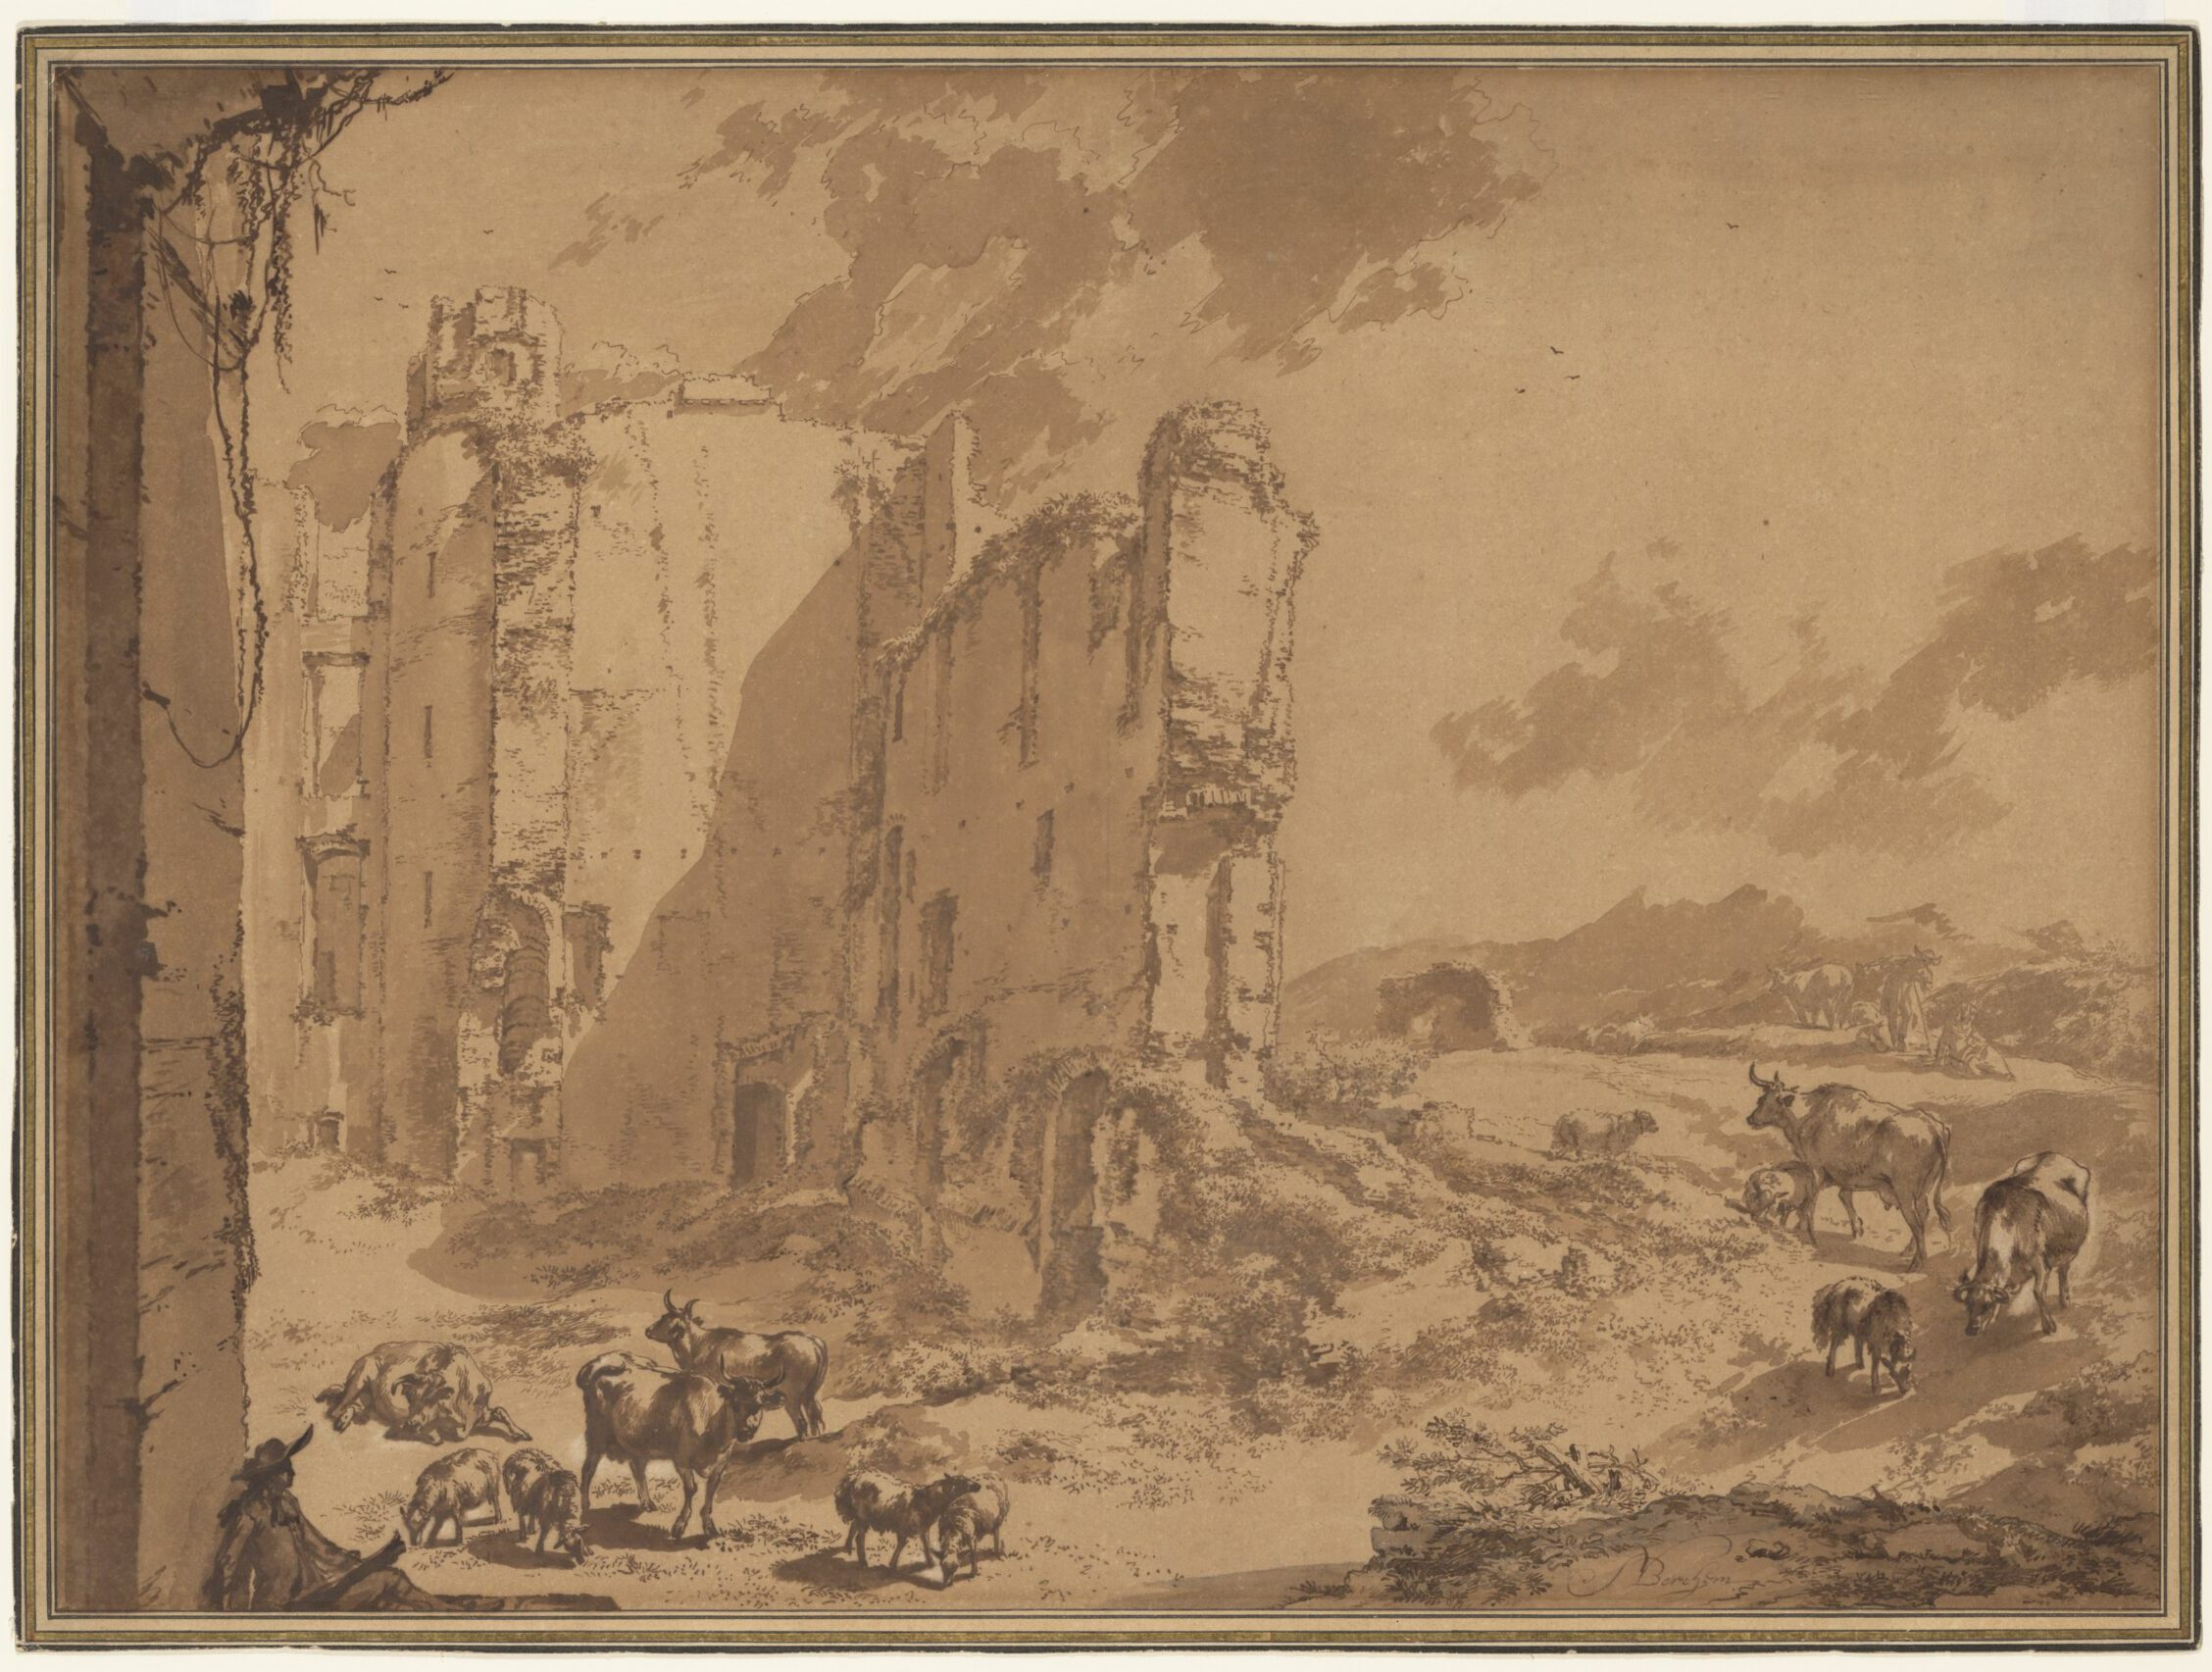 Nicolaes Berchem (1621-1683), The ruins of Brederode castle in an Italianate landscape , ca. 1650, The Metropolitan Museum of Art, New York, purchase, Joseph Pulitzer Bequest and Gift of Dr. Mortimer D. Sackler, Theresa Sackler and Family